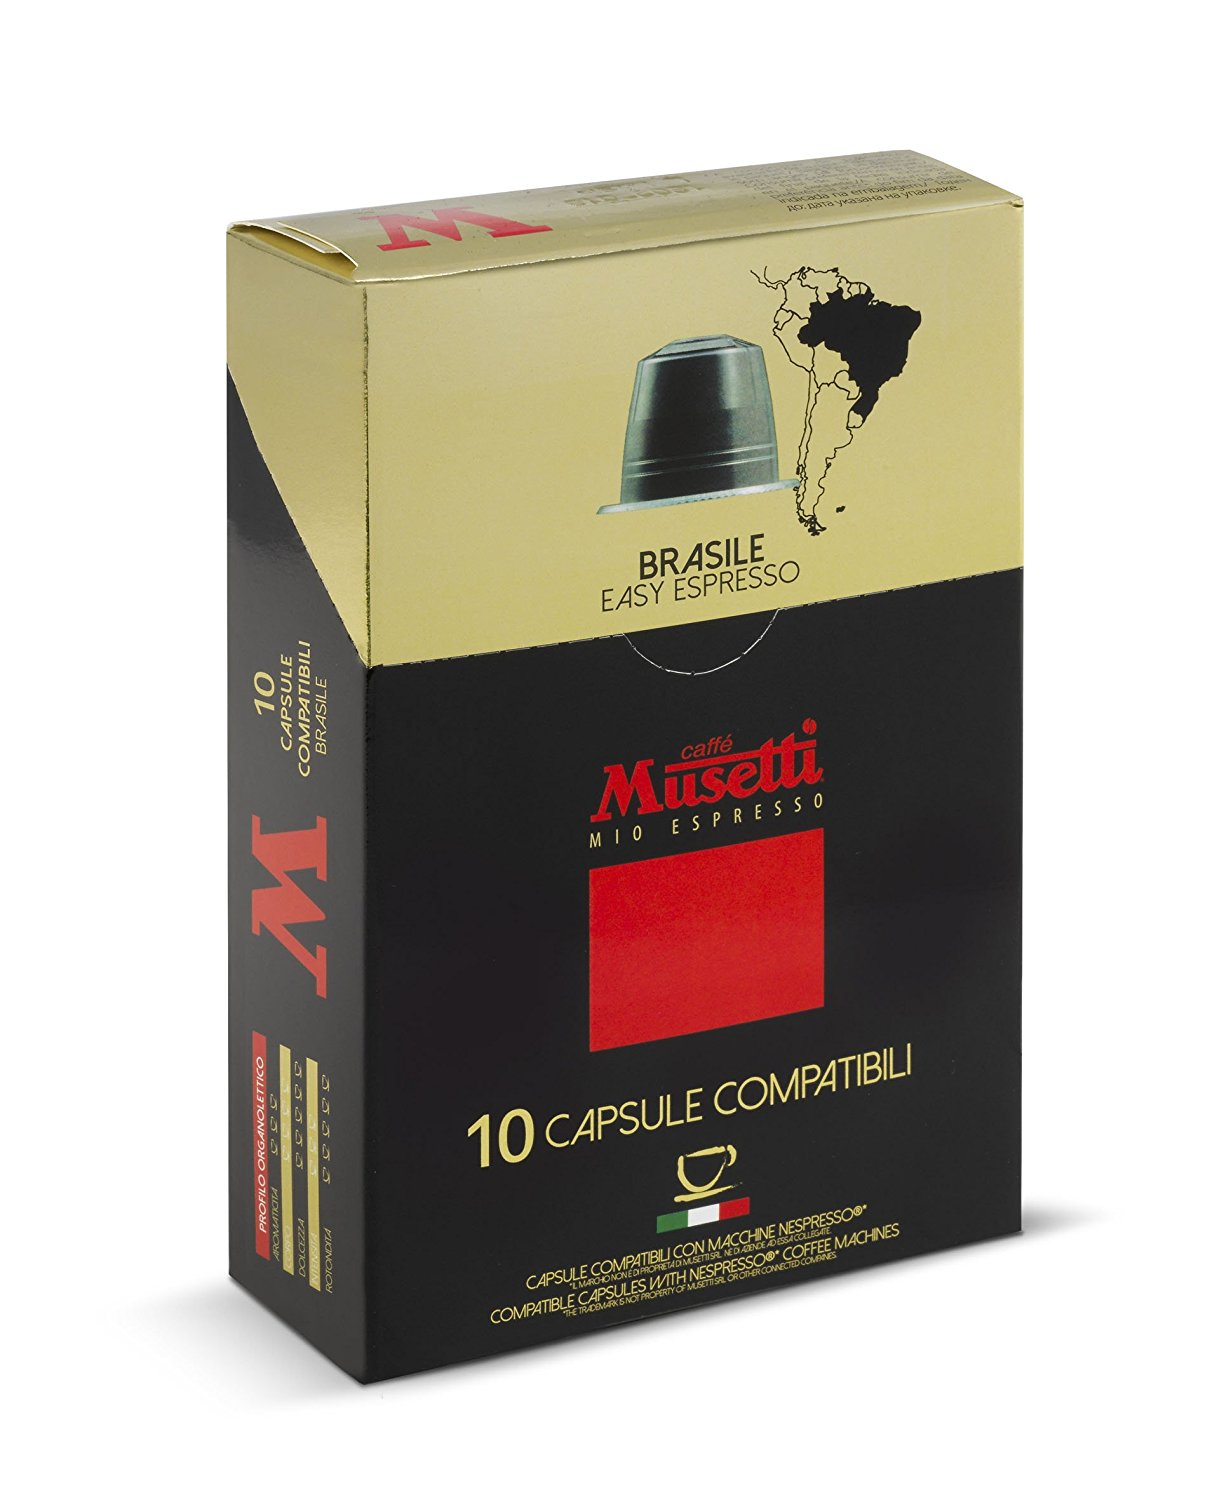 Musetti brasilesingle origin coffeenespresso compatible for Musetti coffee